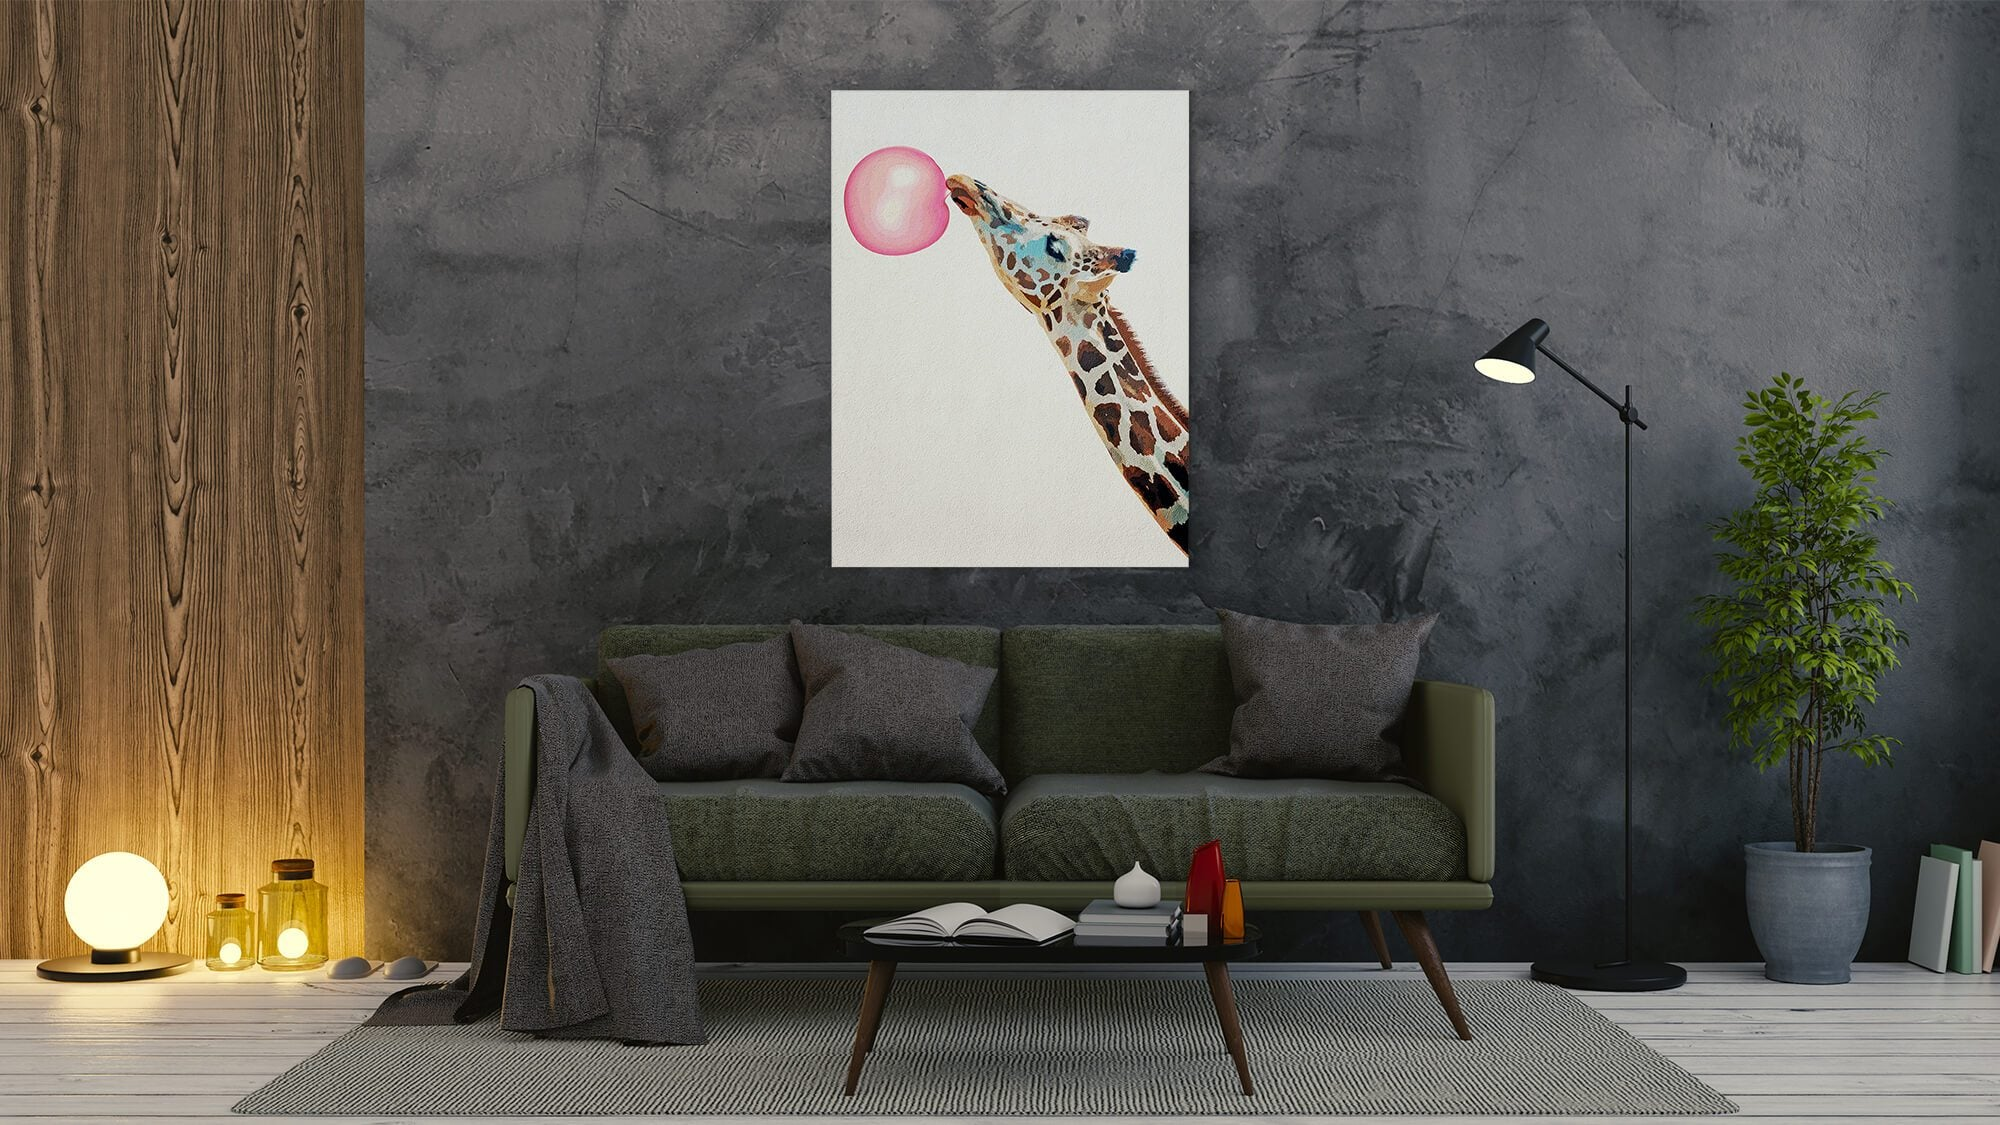 Bubble gum Giraffe - canvas-to-the-people - Exclusive Canvas Art Shipped Globally